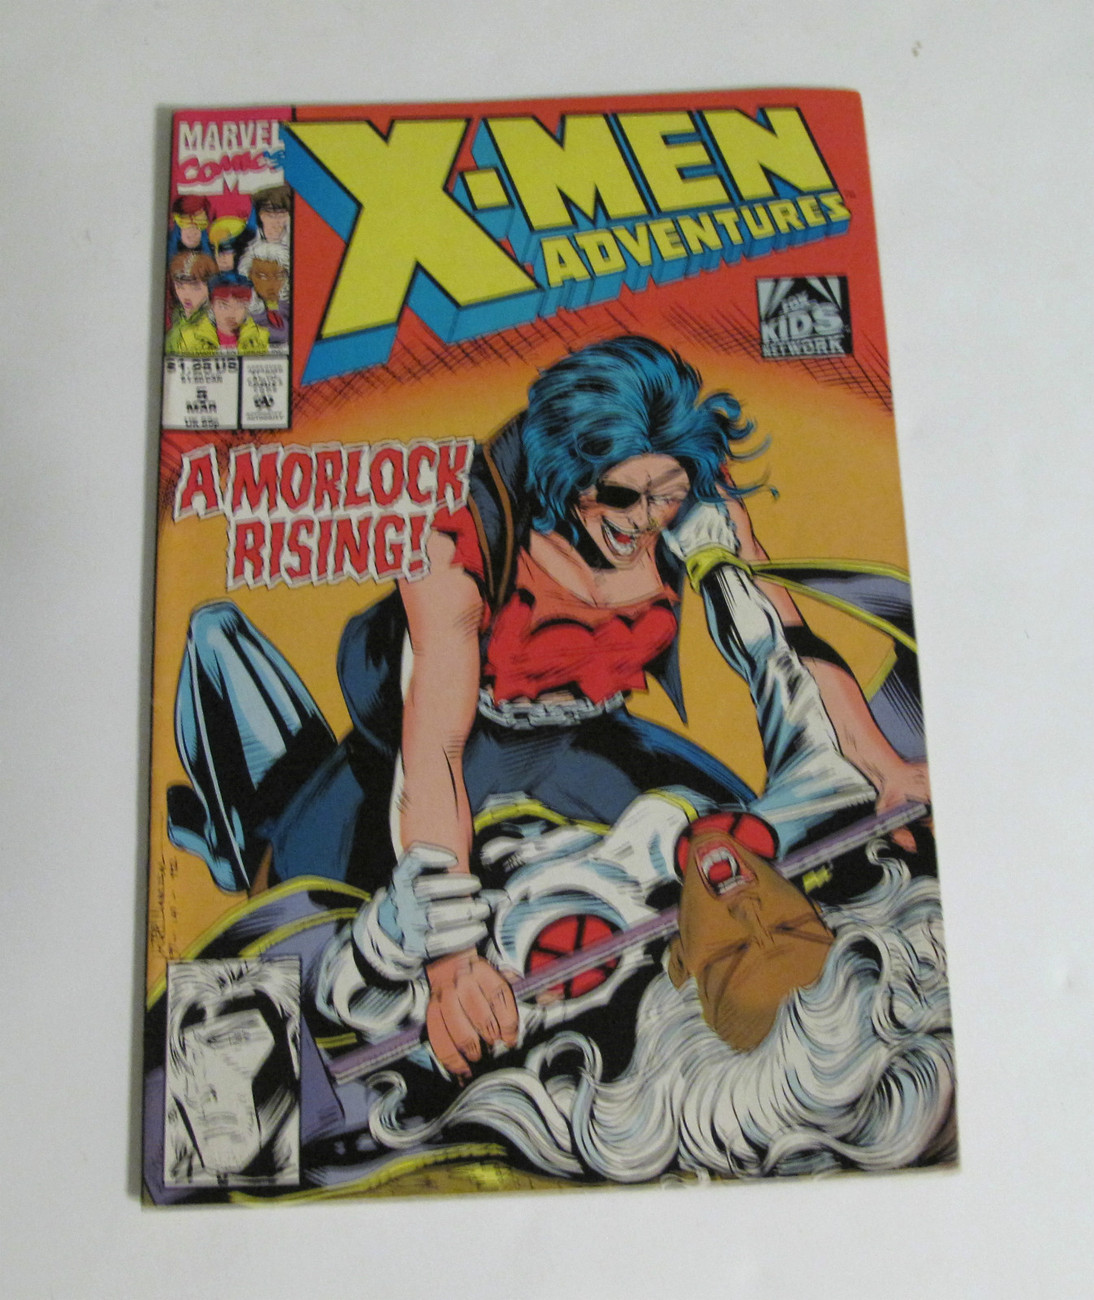 Primary image for Marvel Comic X-Men Adventures A Morlock Rising No 5 March 1993